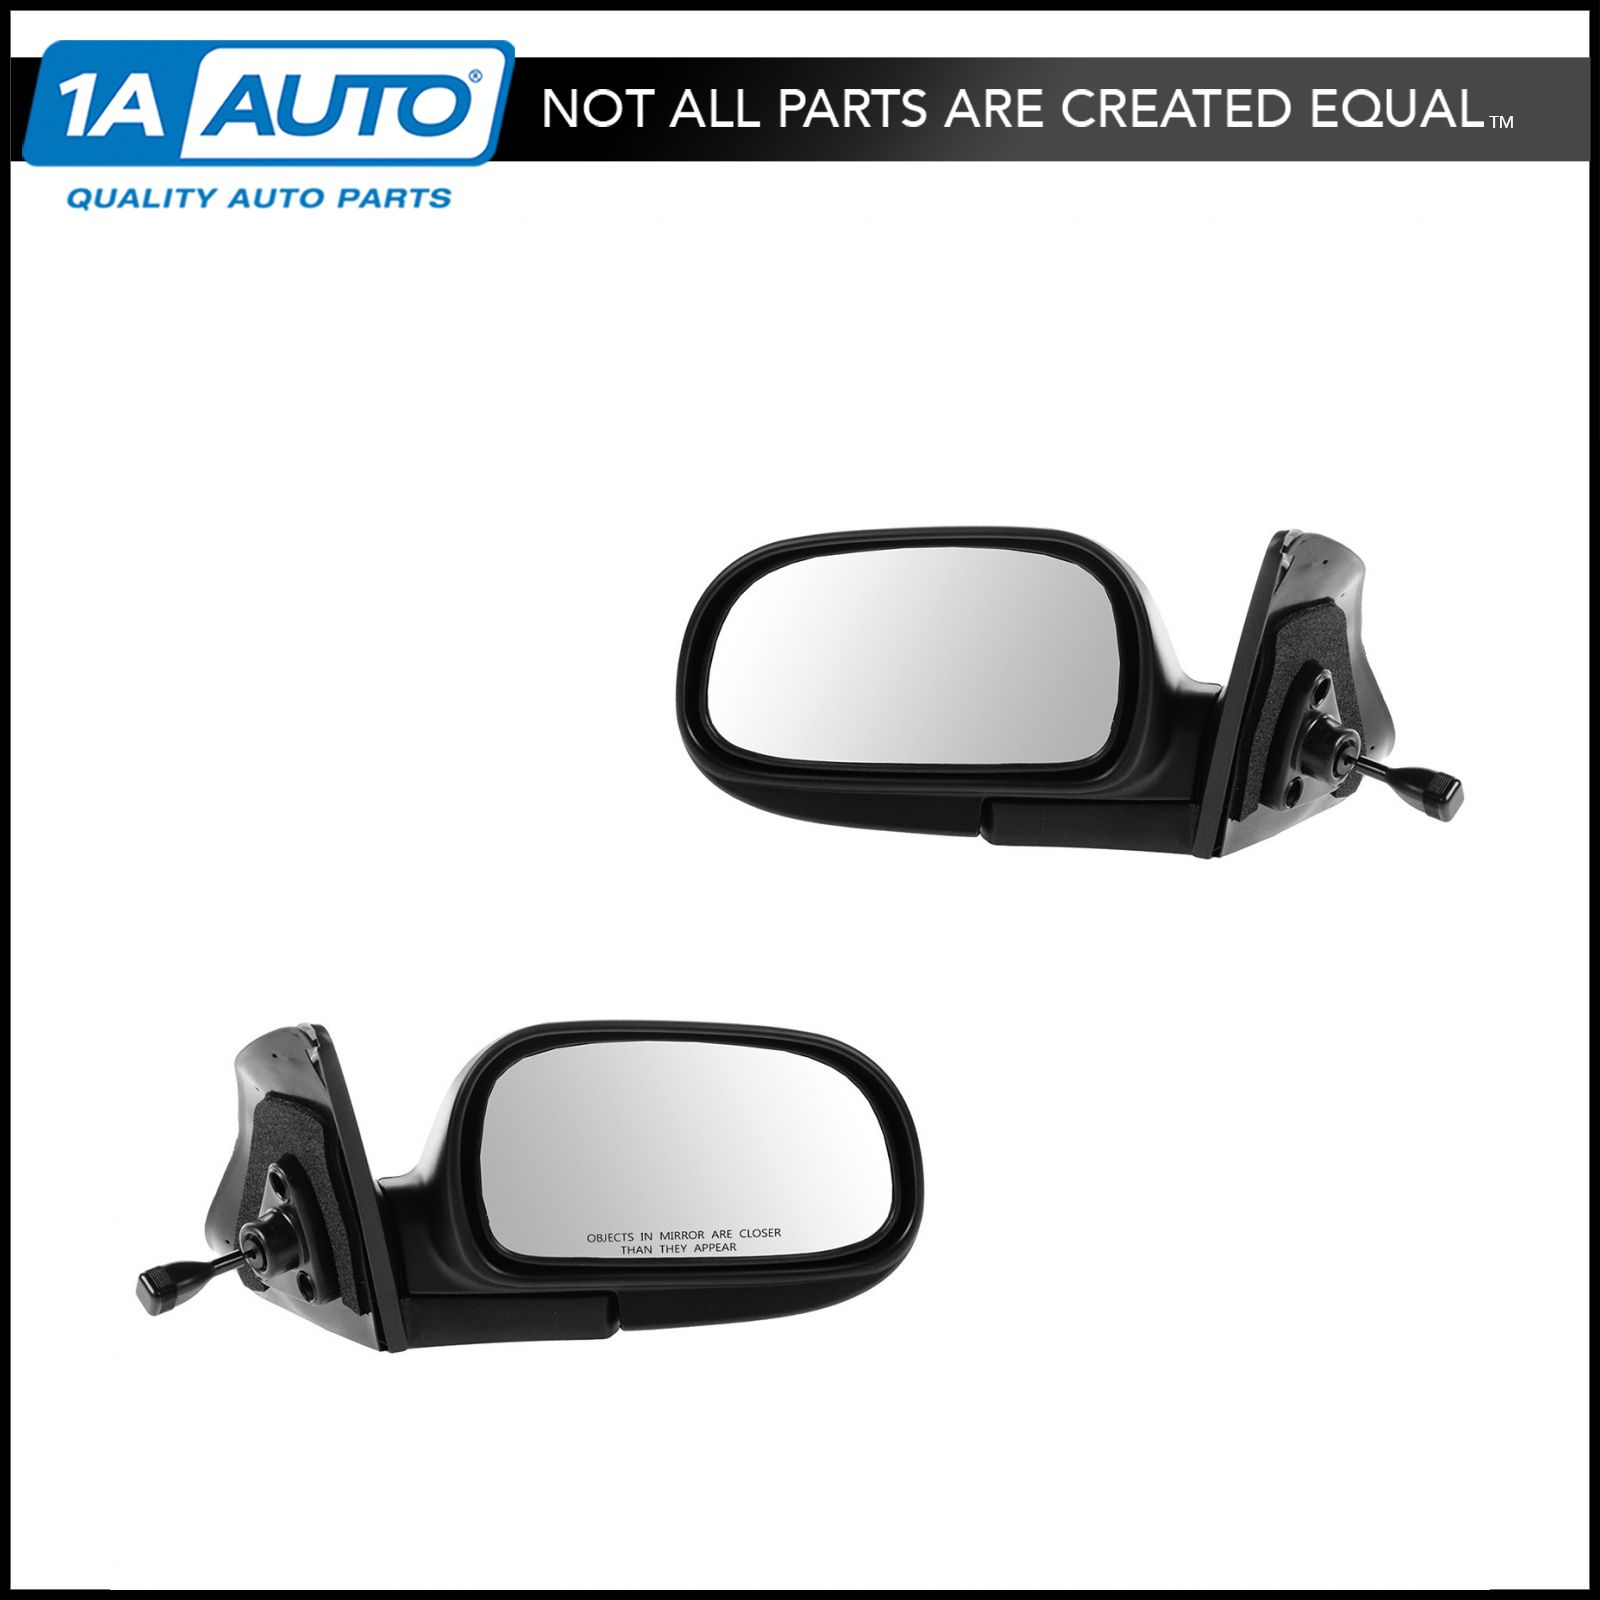 NEW Mirror 87-96 DODGE DAKOTA Driver Left Side MANUAL REMOTE NON-HEATED Assembly